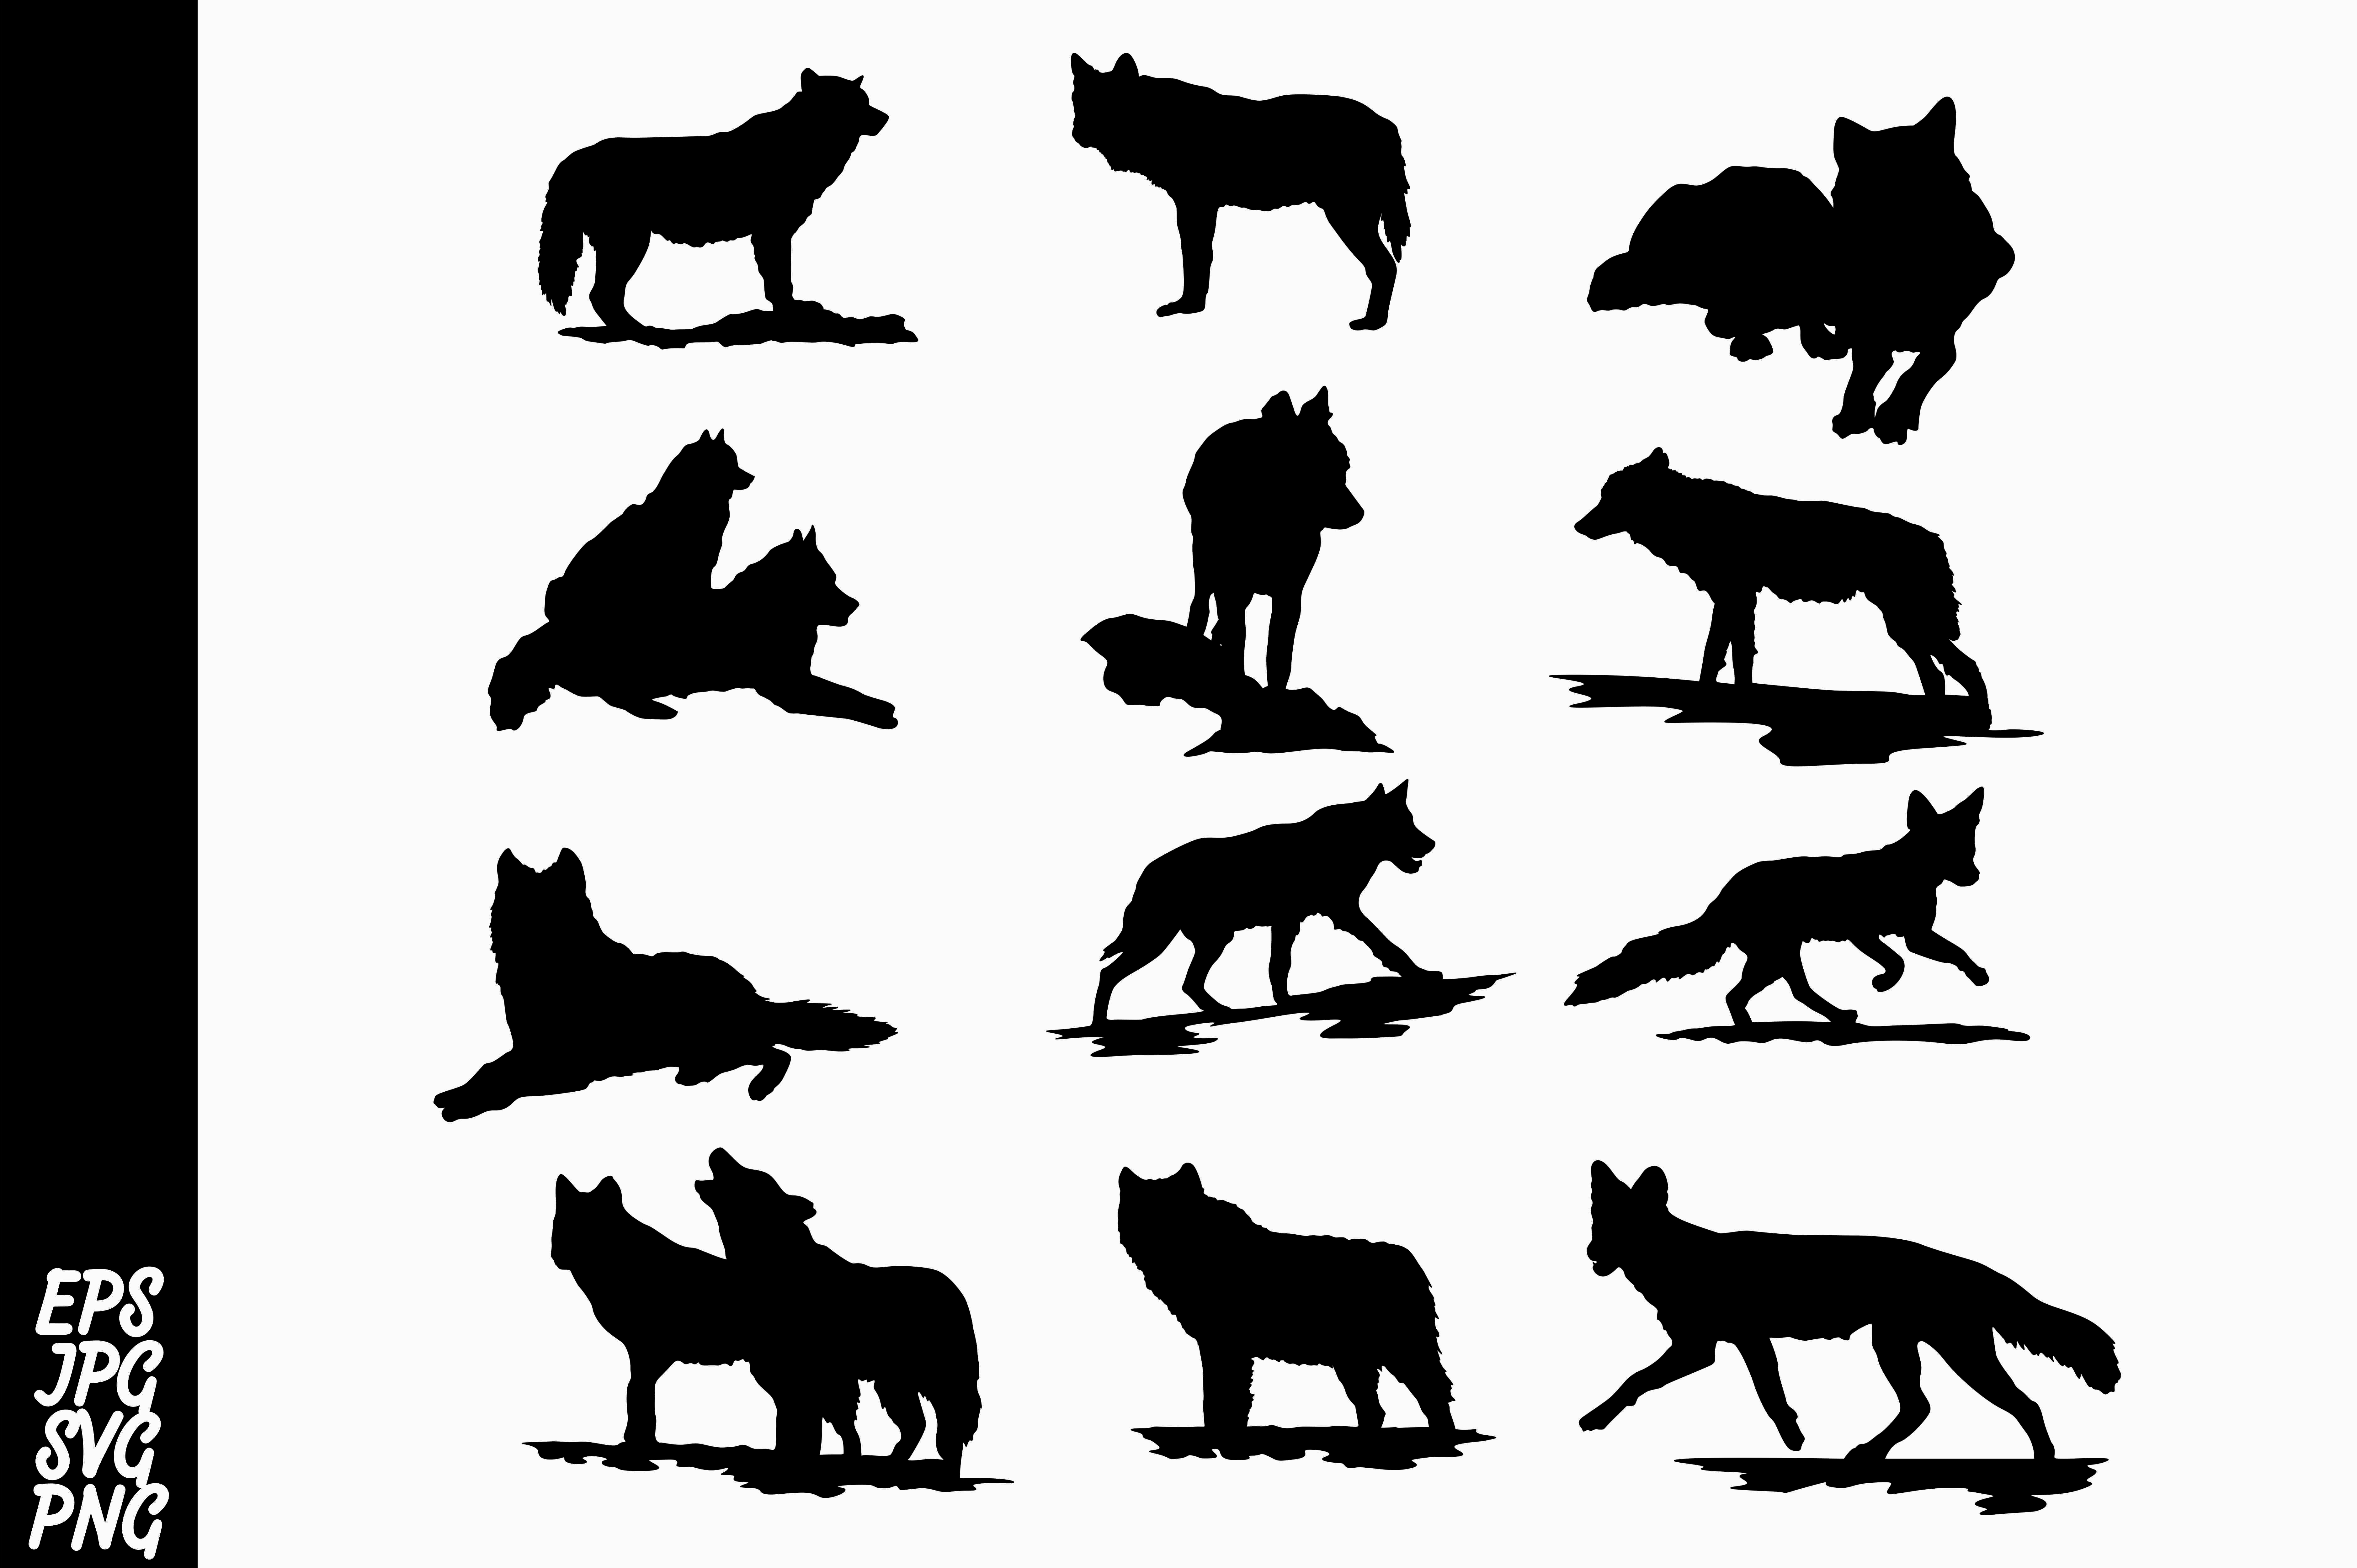 Download Free Wolf Silhouette Bundle Graphic By Arief Sapta Adjie Creative for Cricut Explore, Silhouette and other cutting machines.